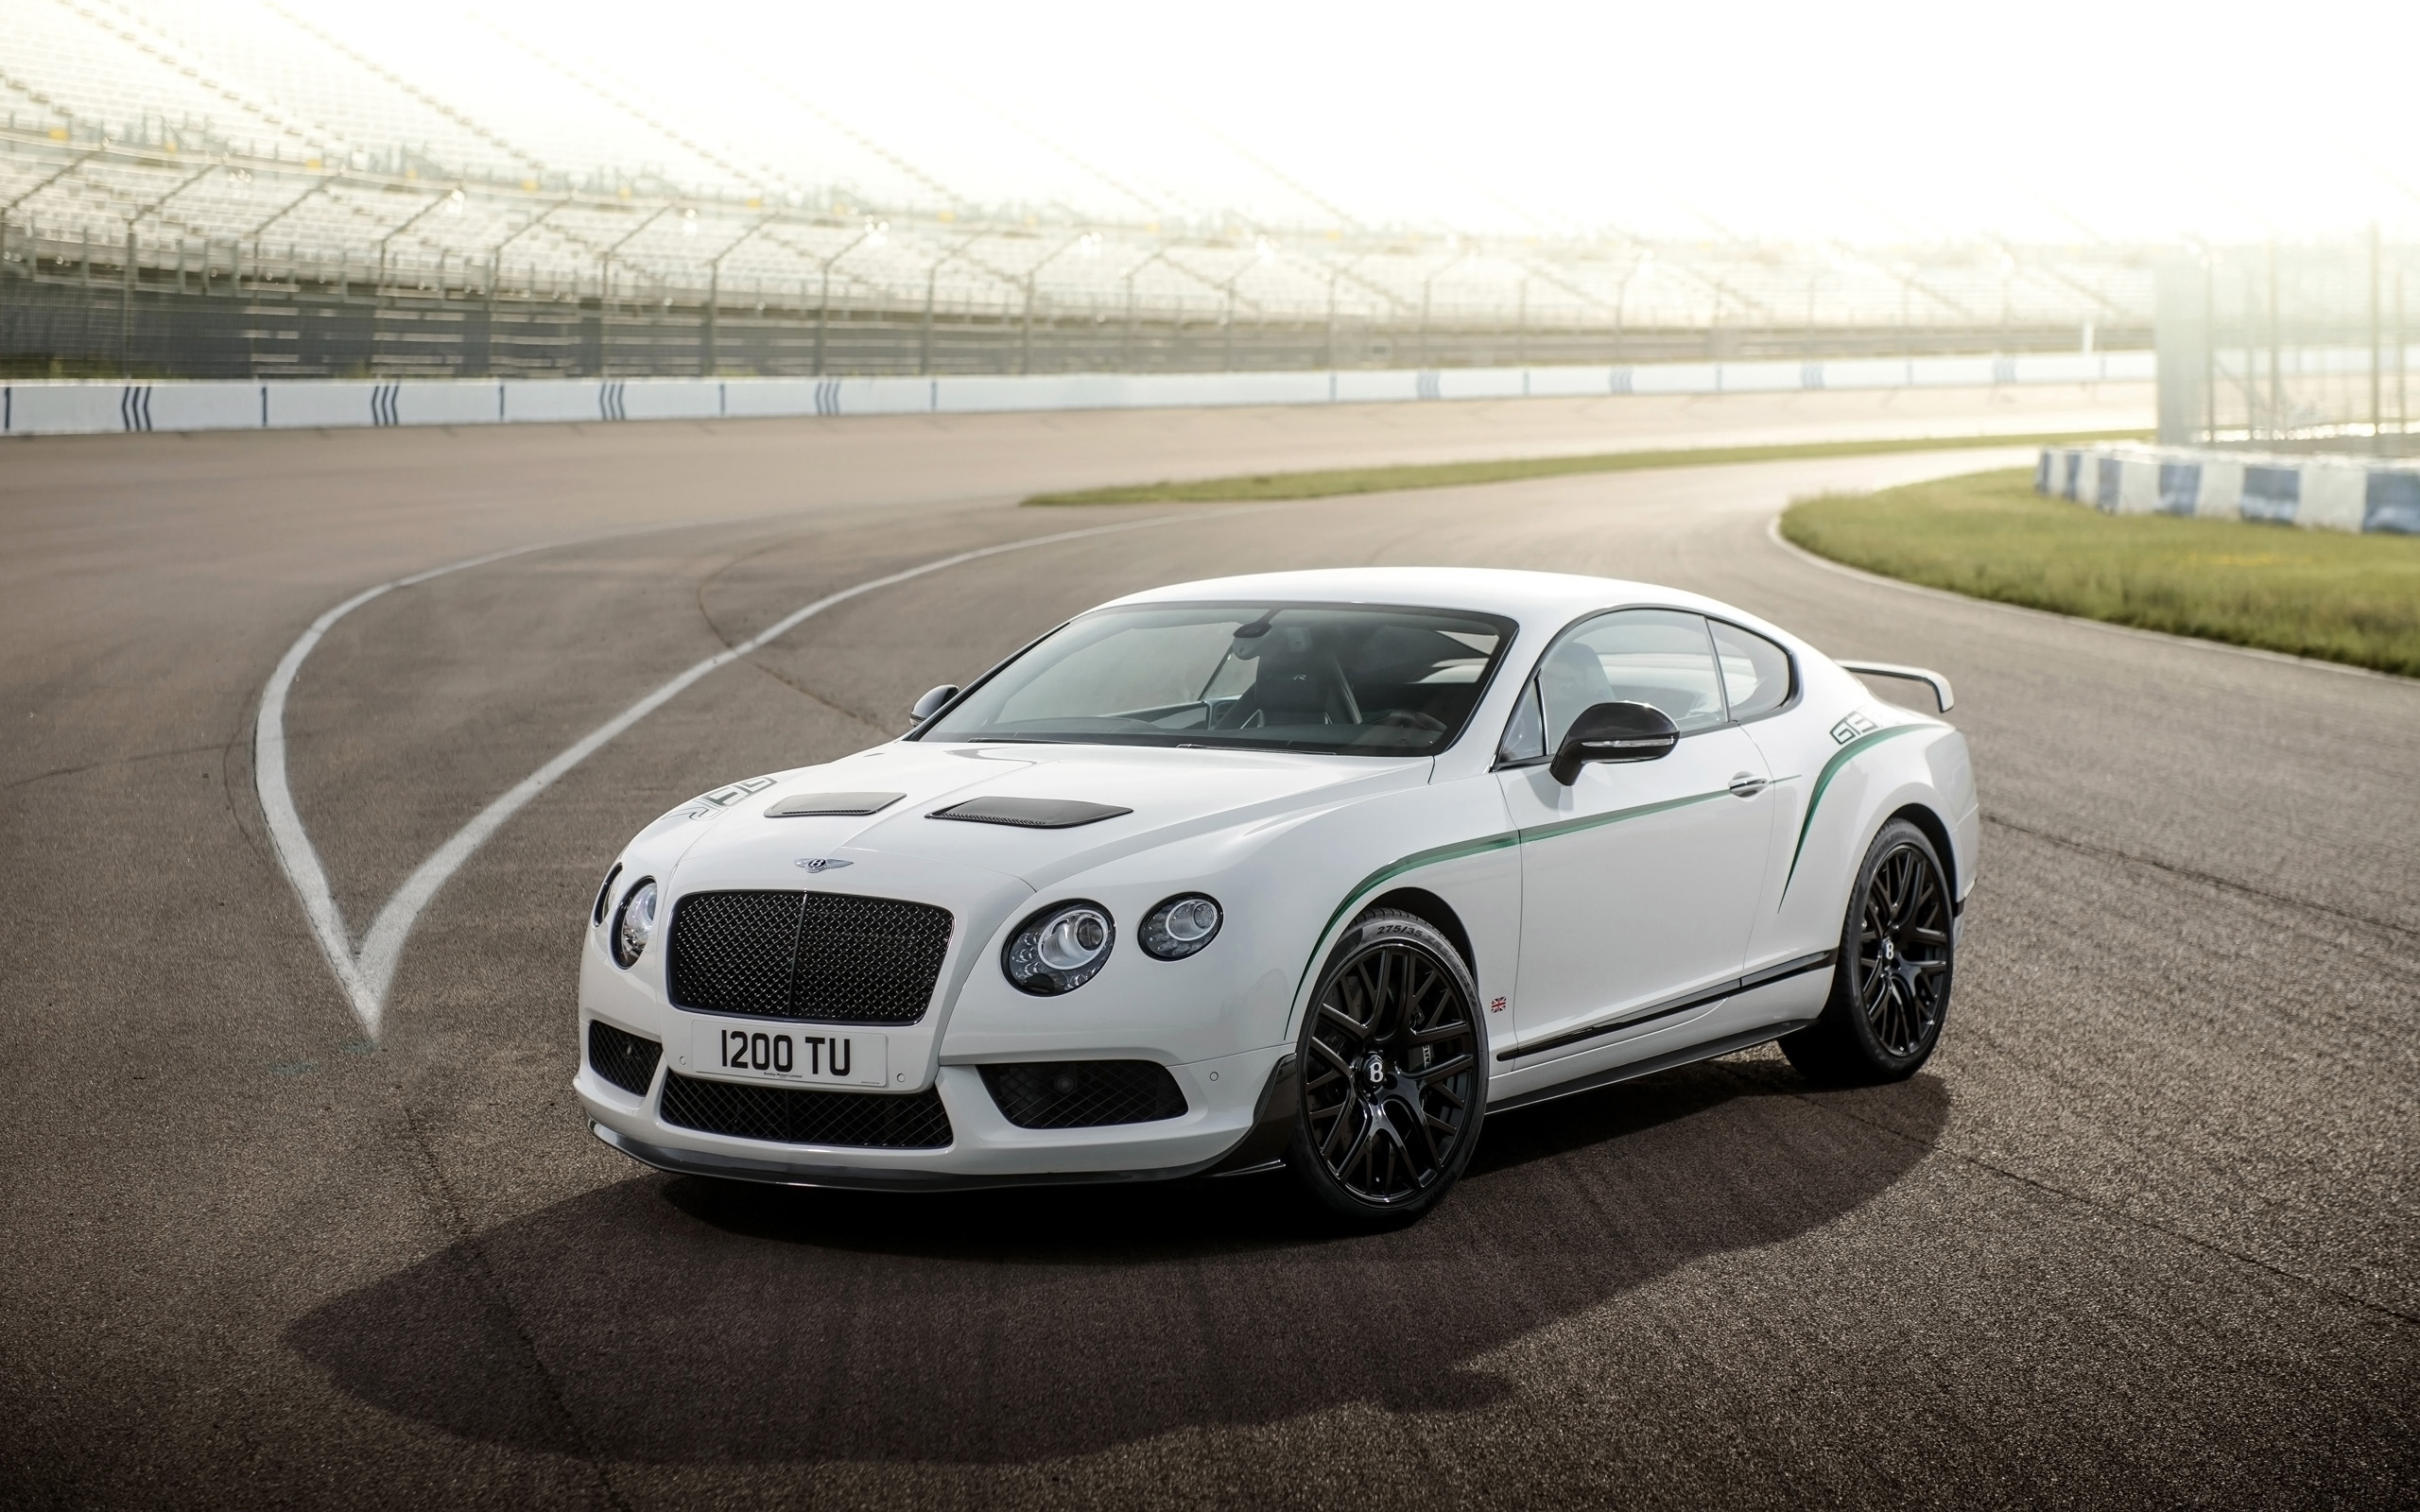 2015 Bentley Continental Gt3 R Wallpaper Hd Car